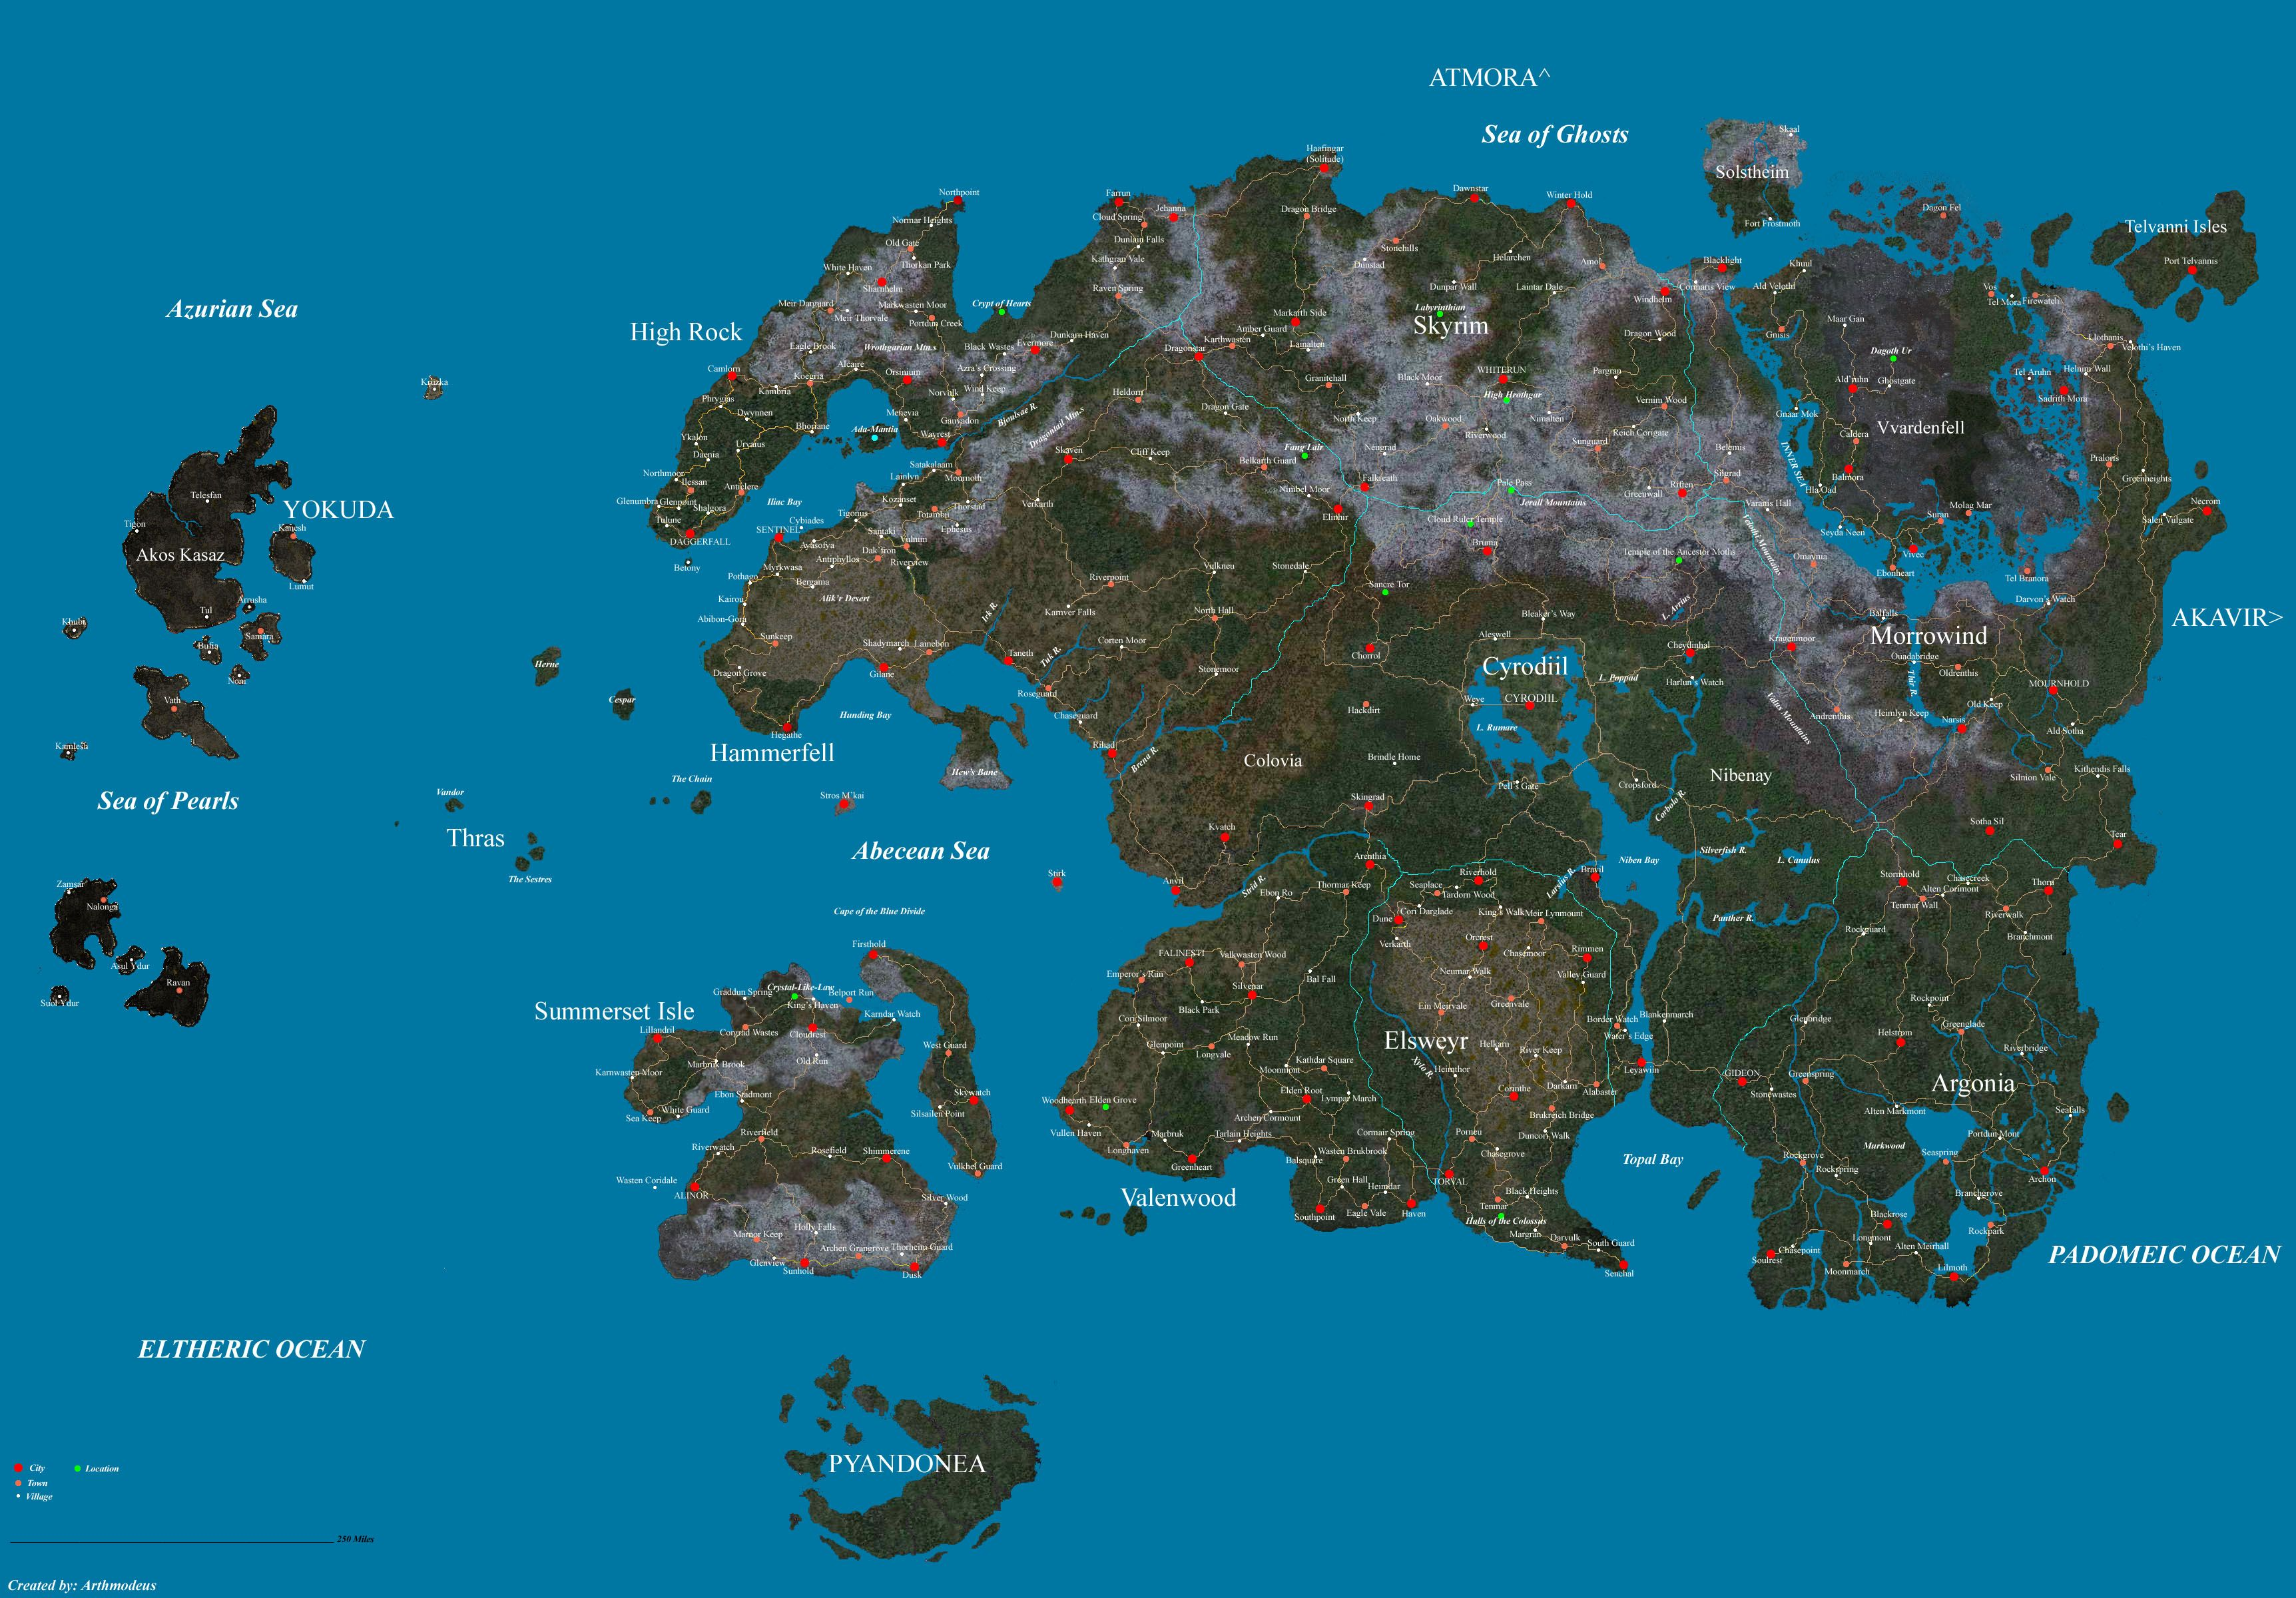 Elder scrolls map of all of known nirn. Includes tamriel